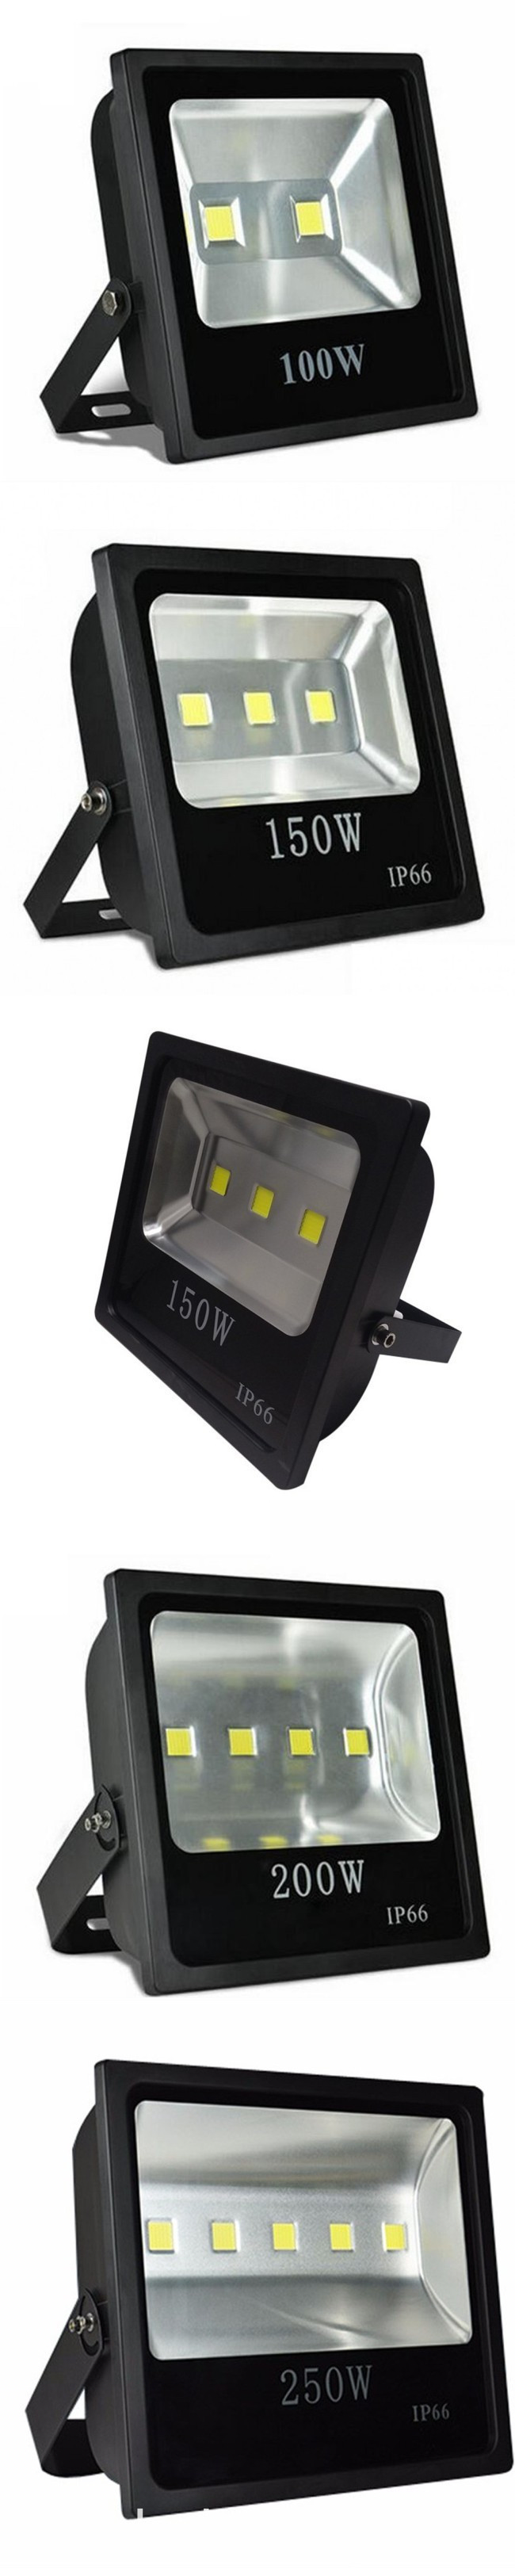 160W COB LED Floodlight Outdoor Cheap Light 110V 220V (100W-.83/120W-.23/150W-.01/160W-.54/200W-.92/250W-.53) 2-Year Warranty